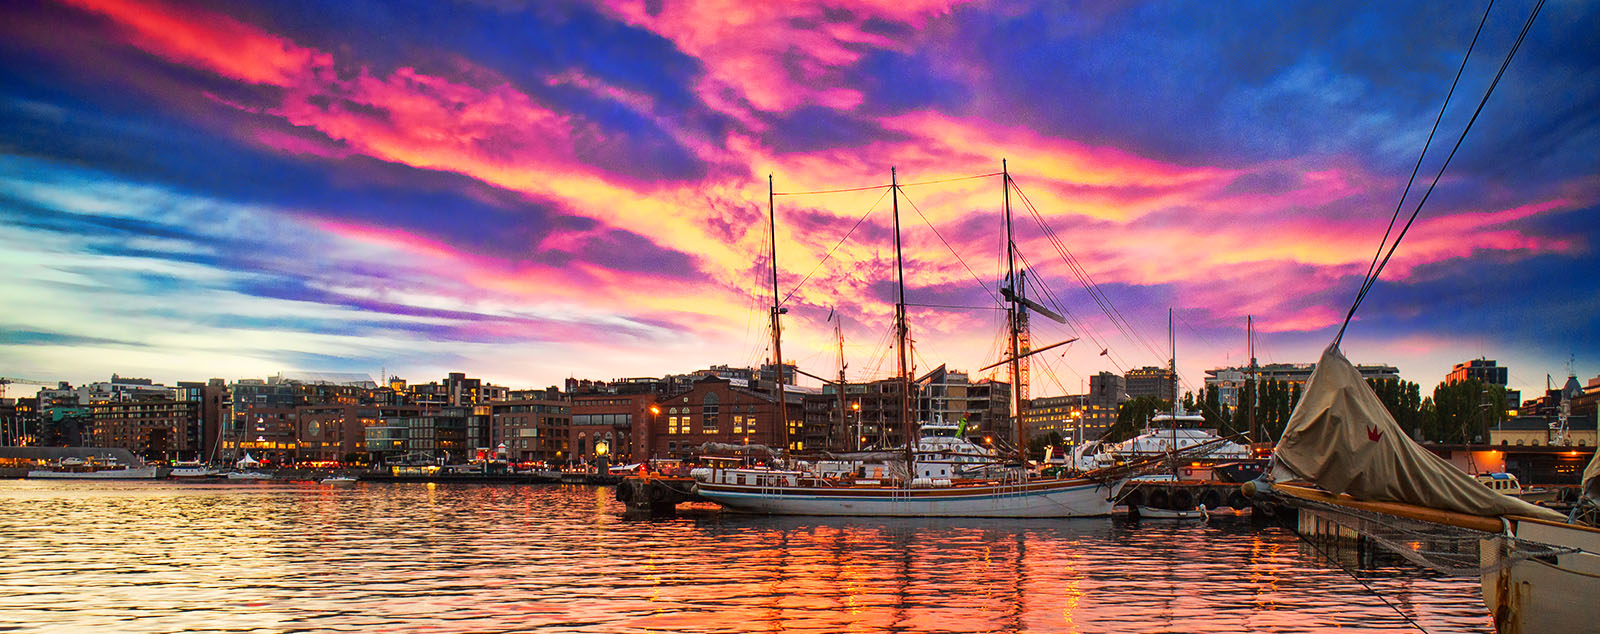 Oslo with a scarlet and yellow sunset